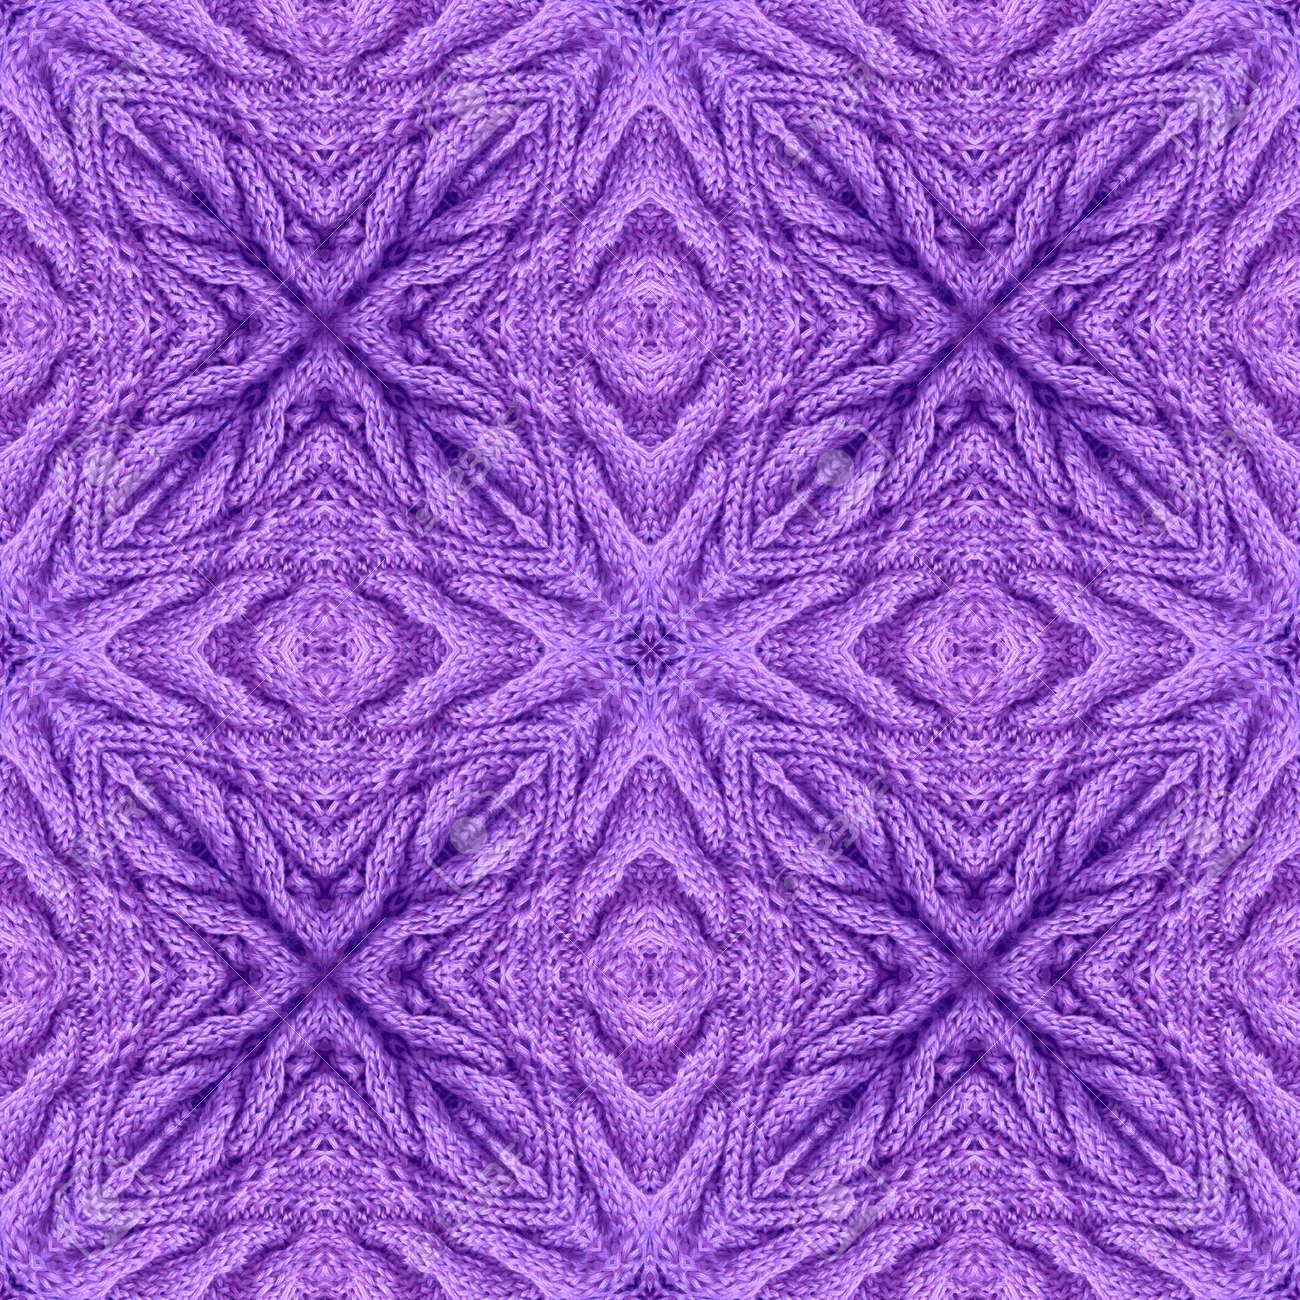 Knitted seamless pattern with relief ornament in violet colors. Print for fabric and textile. - 173407852